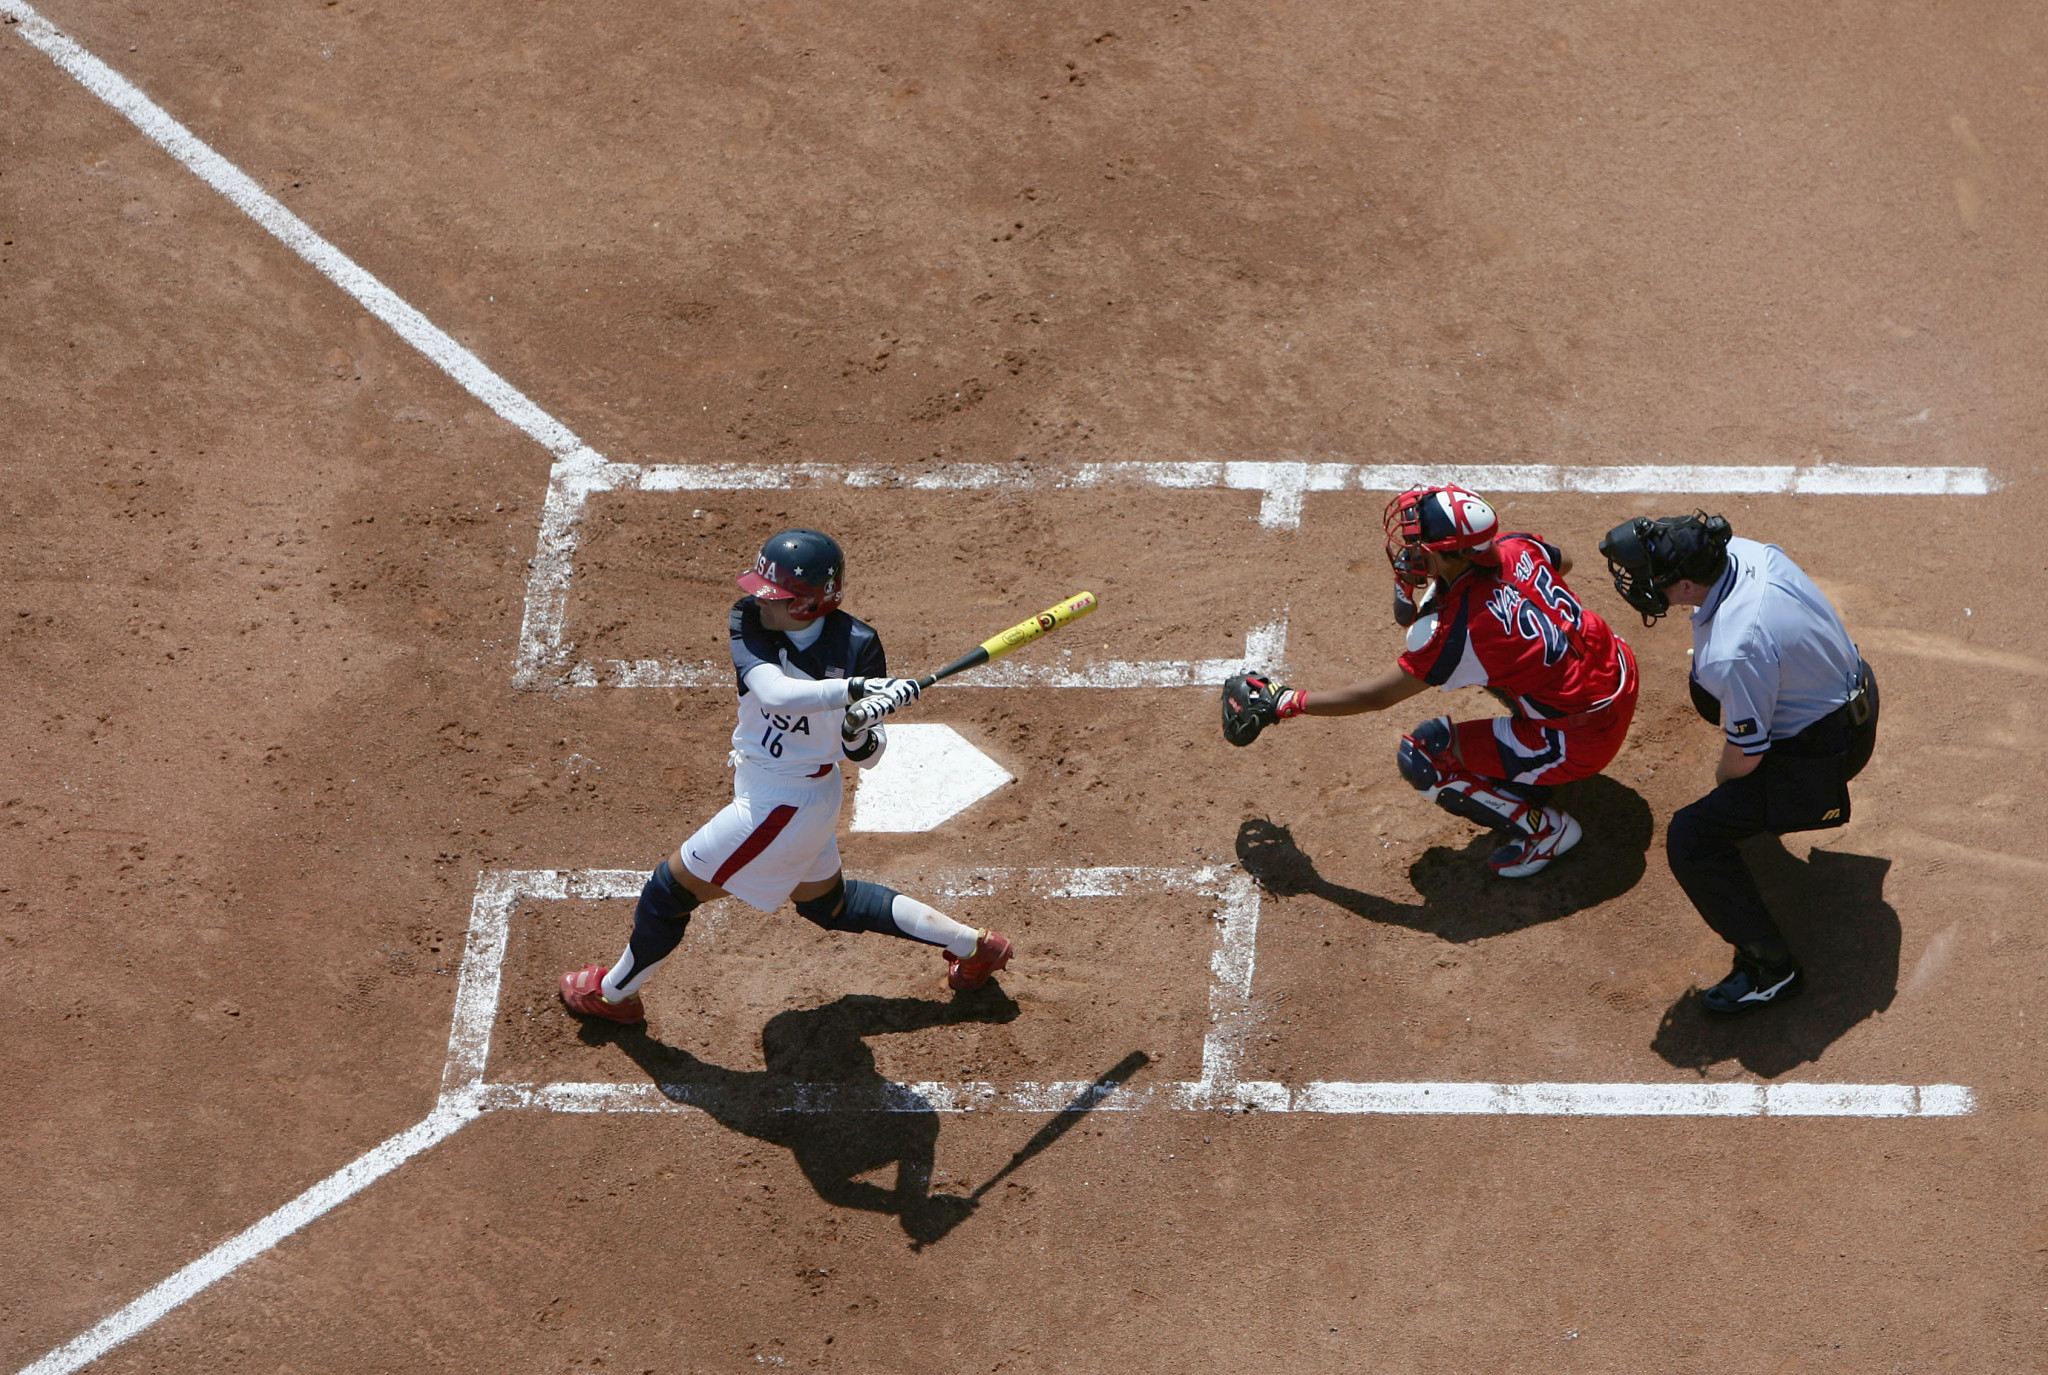 Peru to host workshop for female umpires in build-up to WBSC Under-18 Women's Softball World Cup